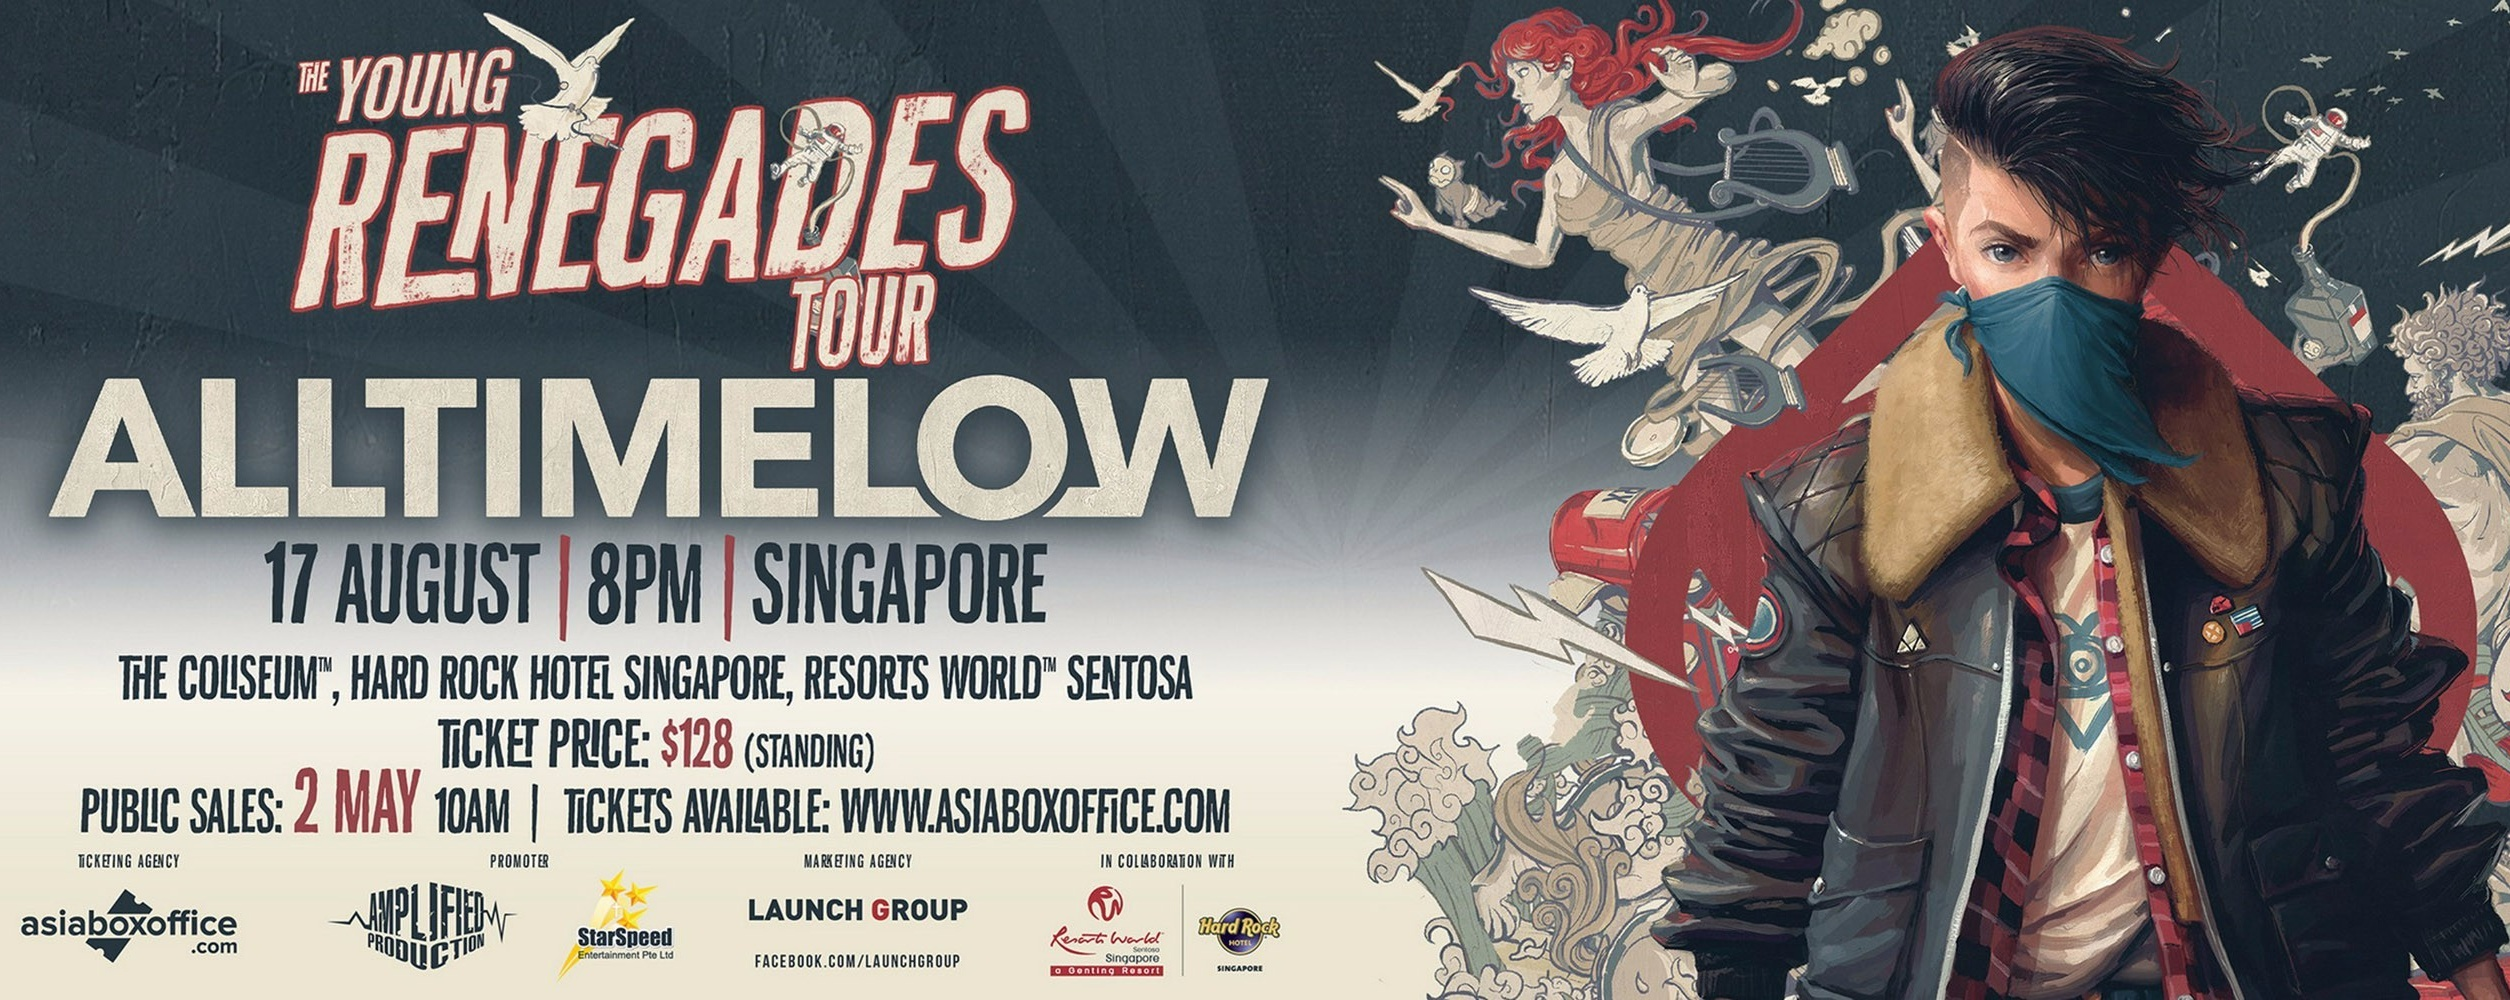 All Time Low live in Singapore